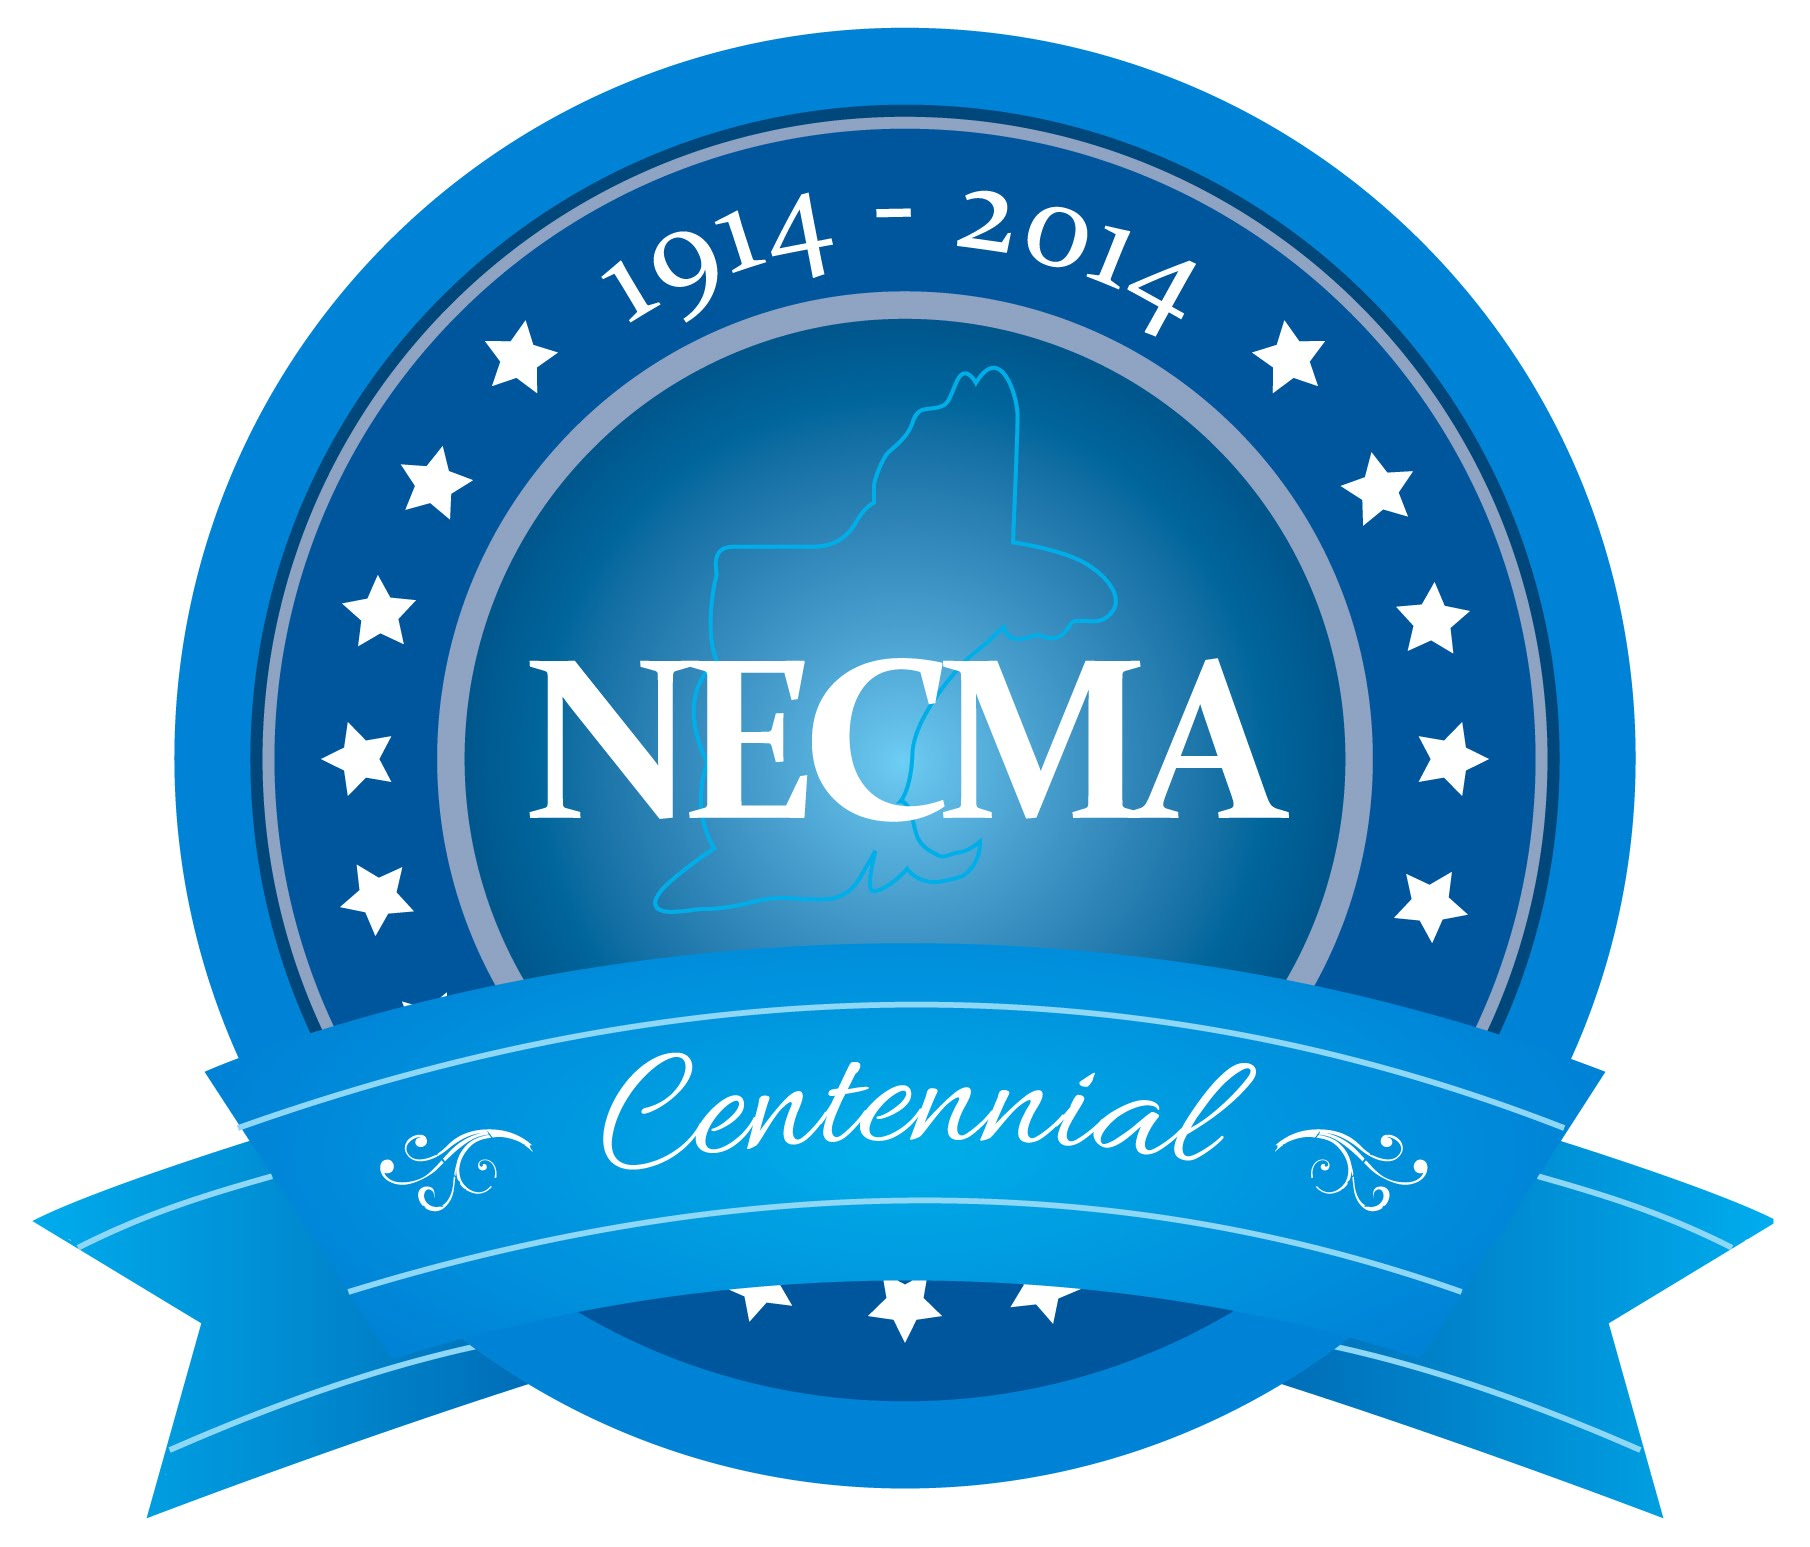 NECMA Celebrates Its Centennial 1914 - 2014